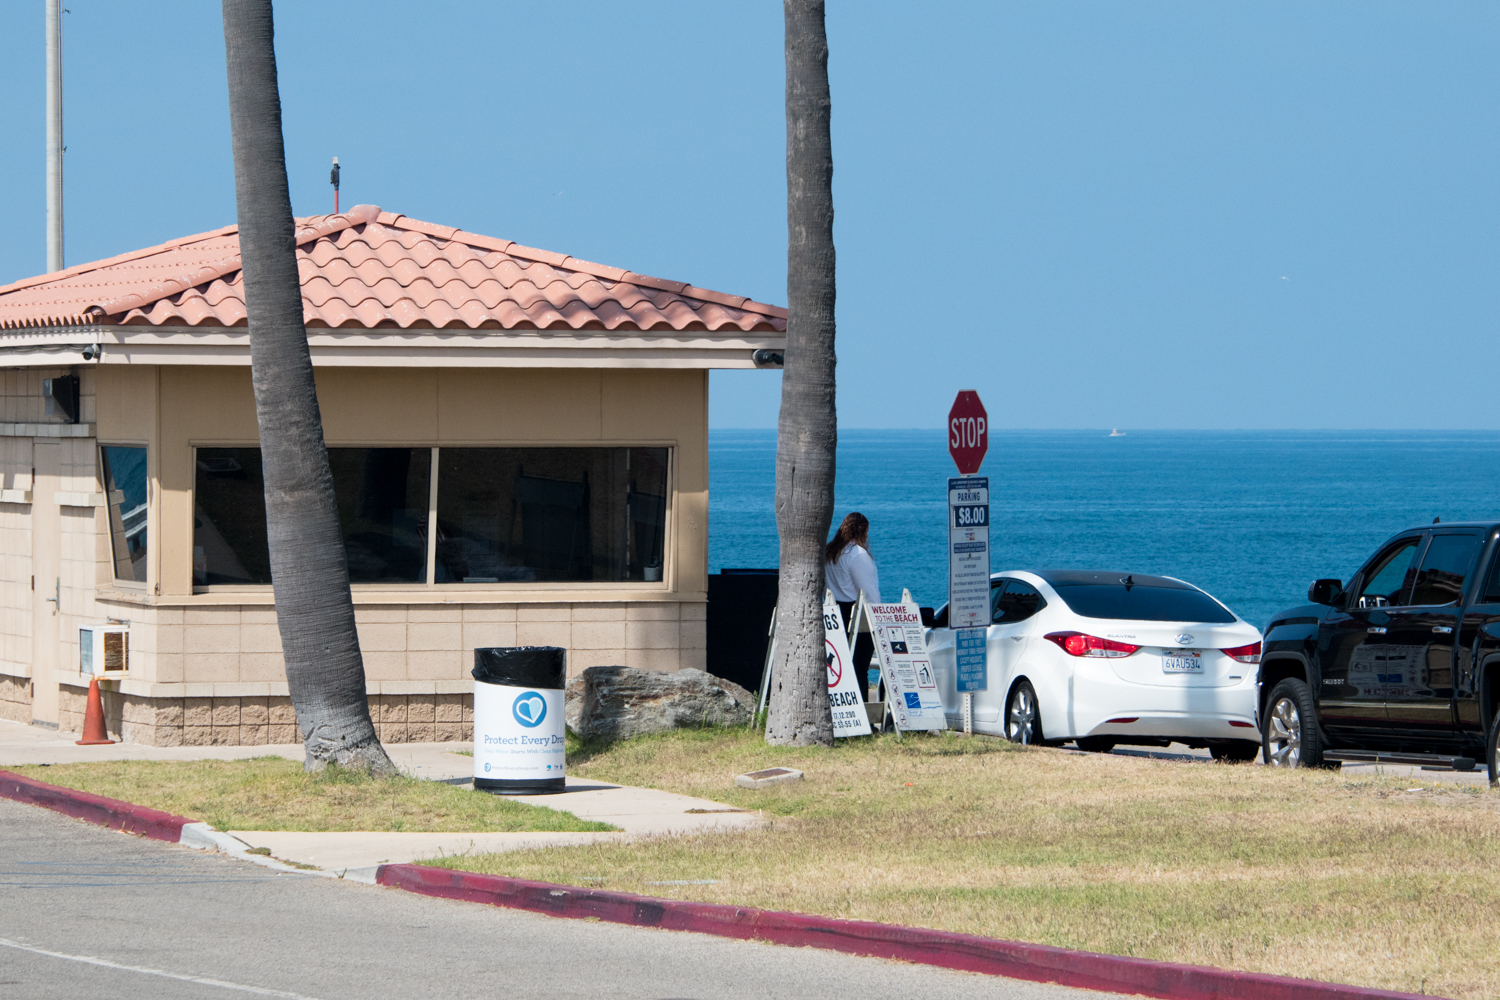 Entrance to Dockweiler State Beach